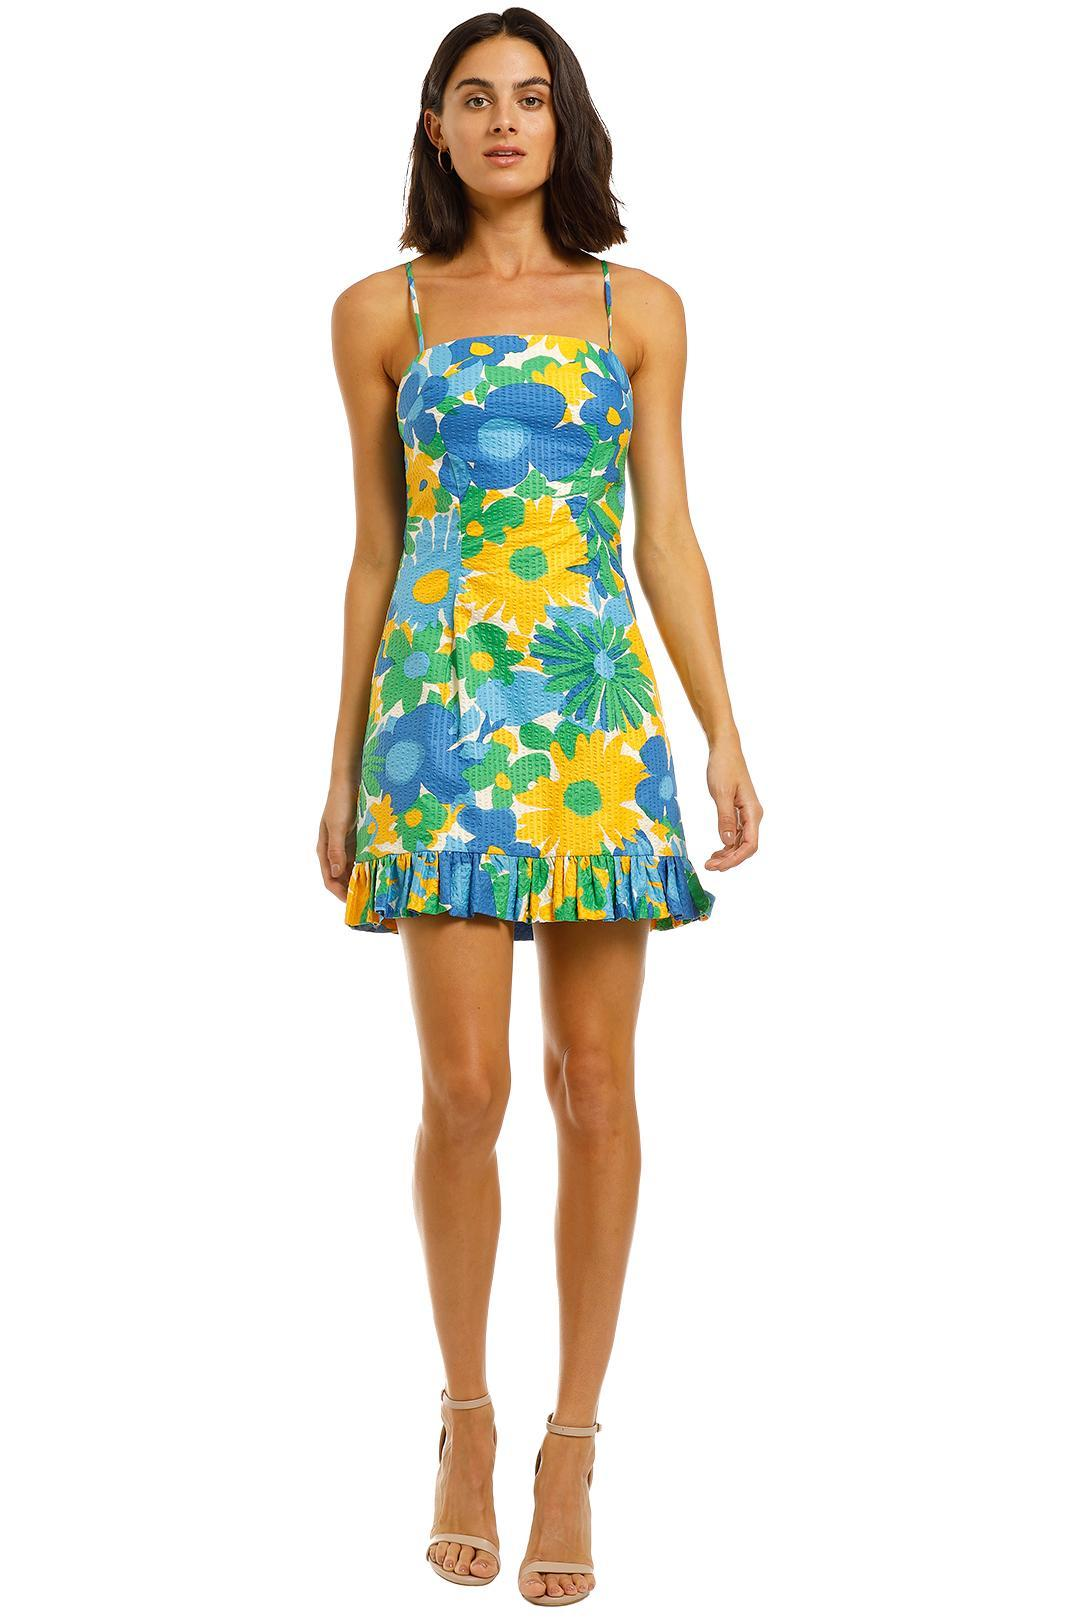 BY JOHNNY - Sunday Floral Frill Mini Dress